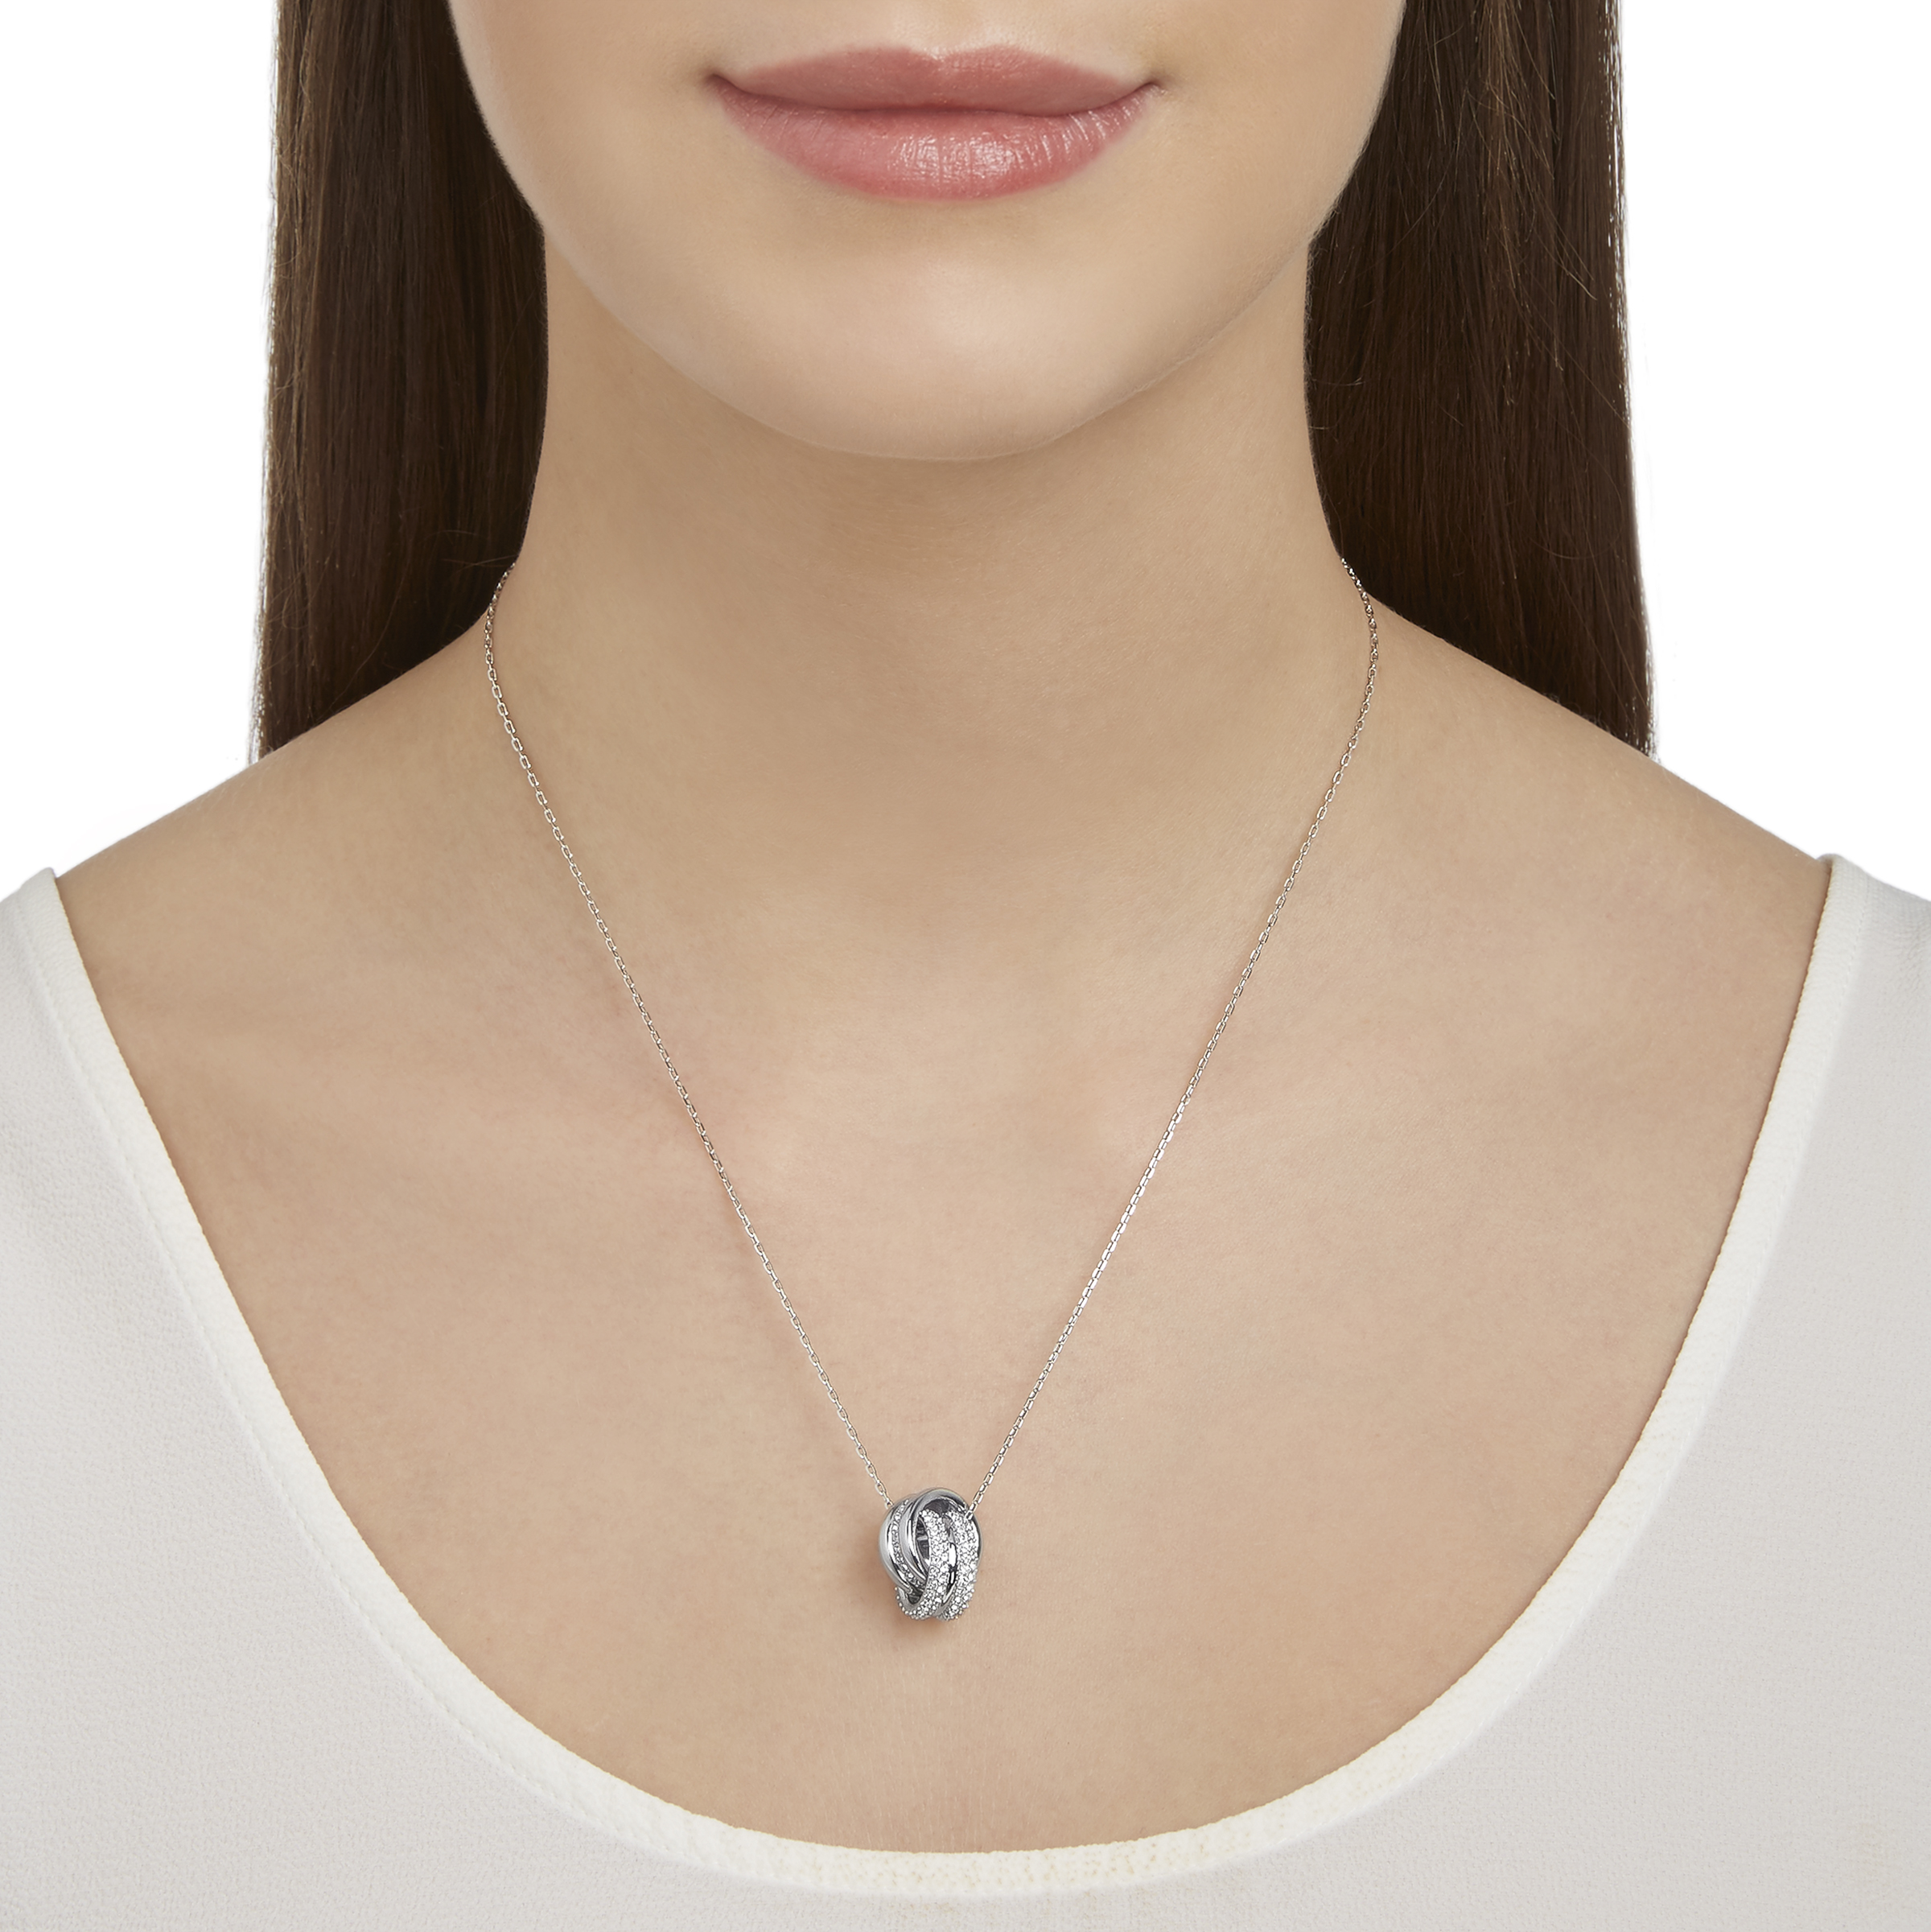 Further Pendant, Small, White, Rhodium Plated